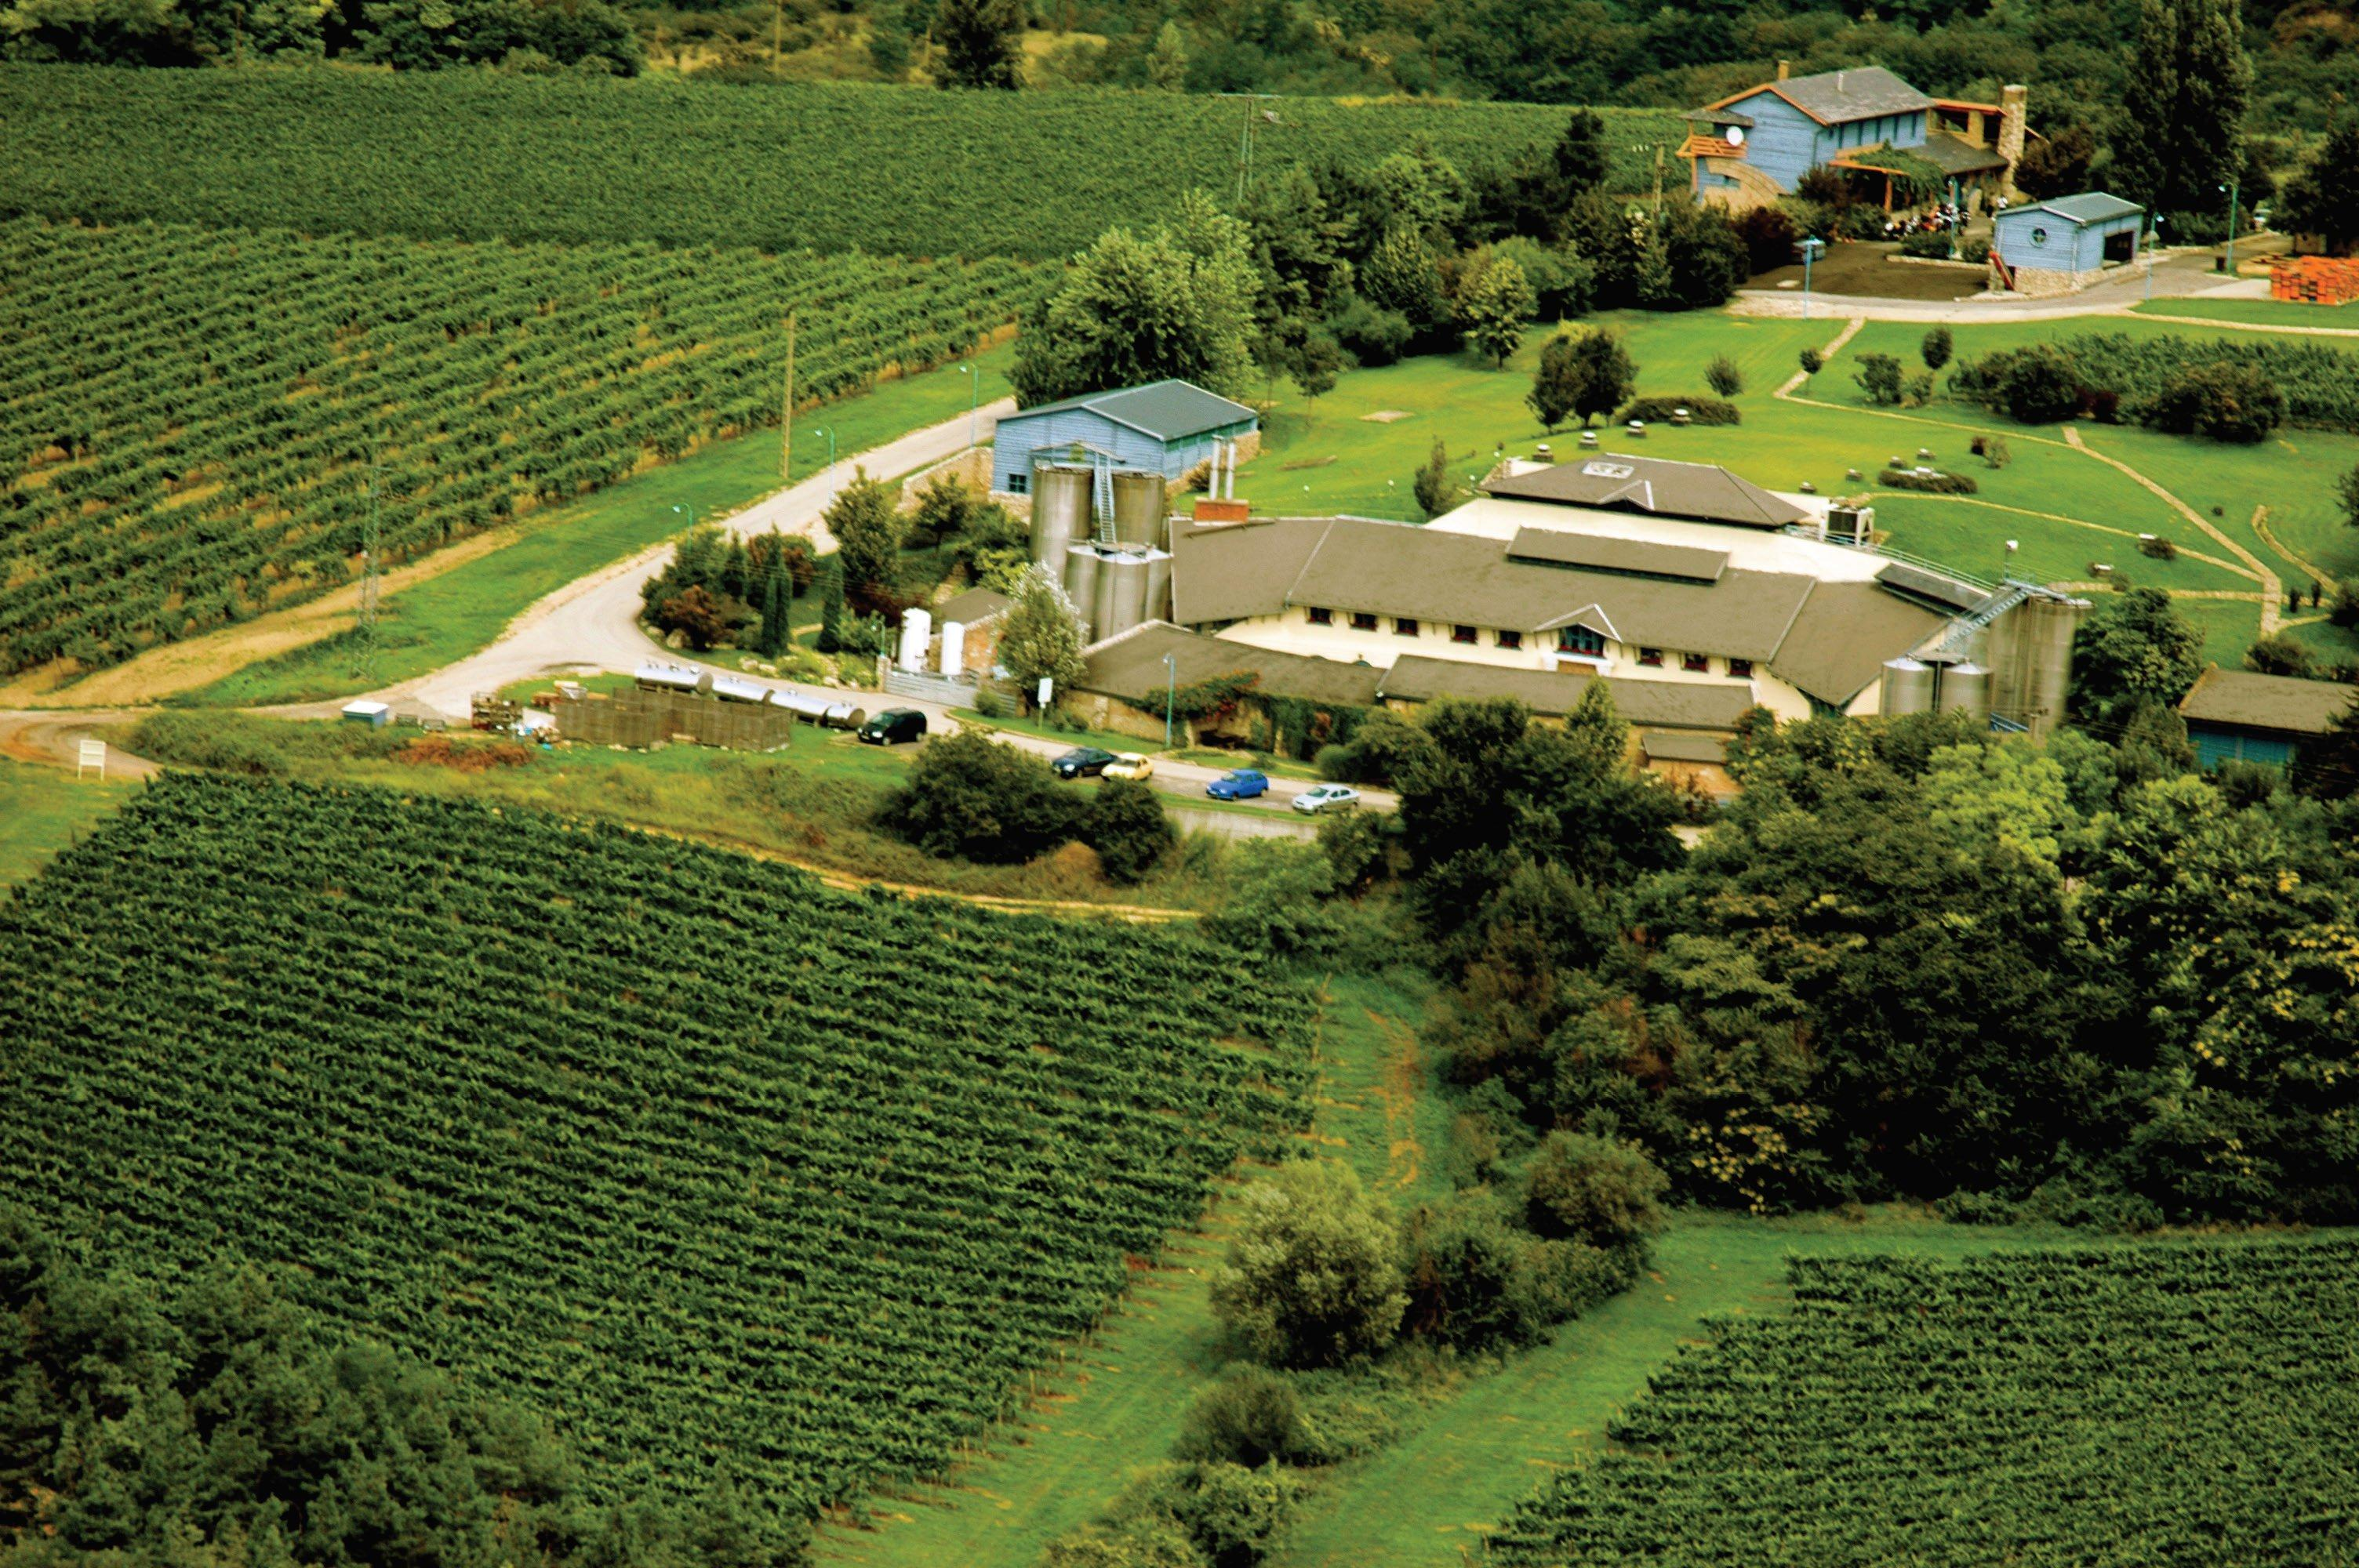 Introducing Hilltop Winery From Neszmély